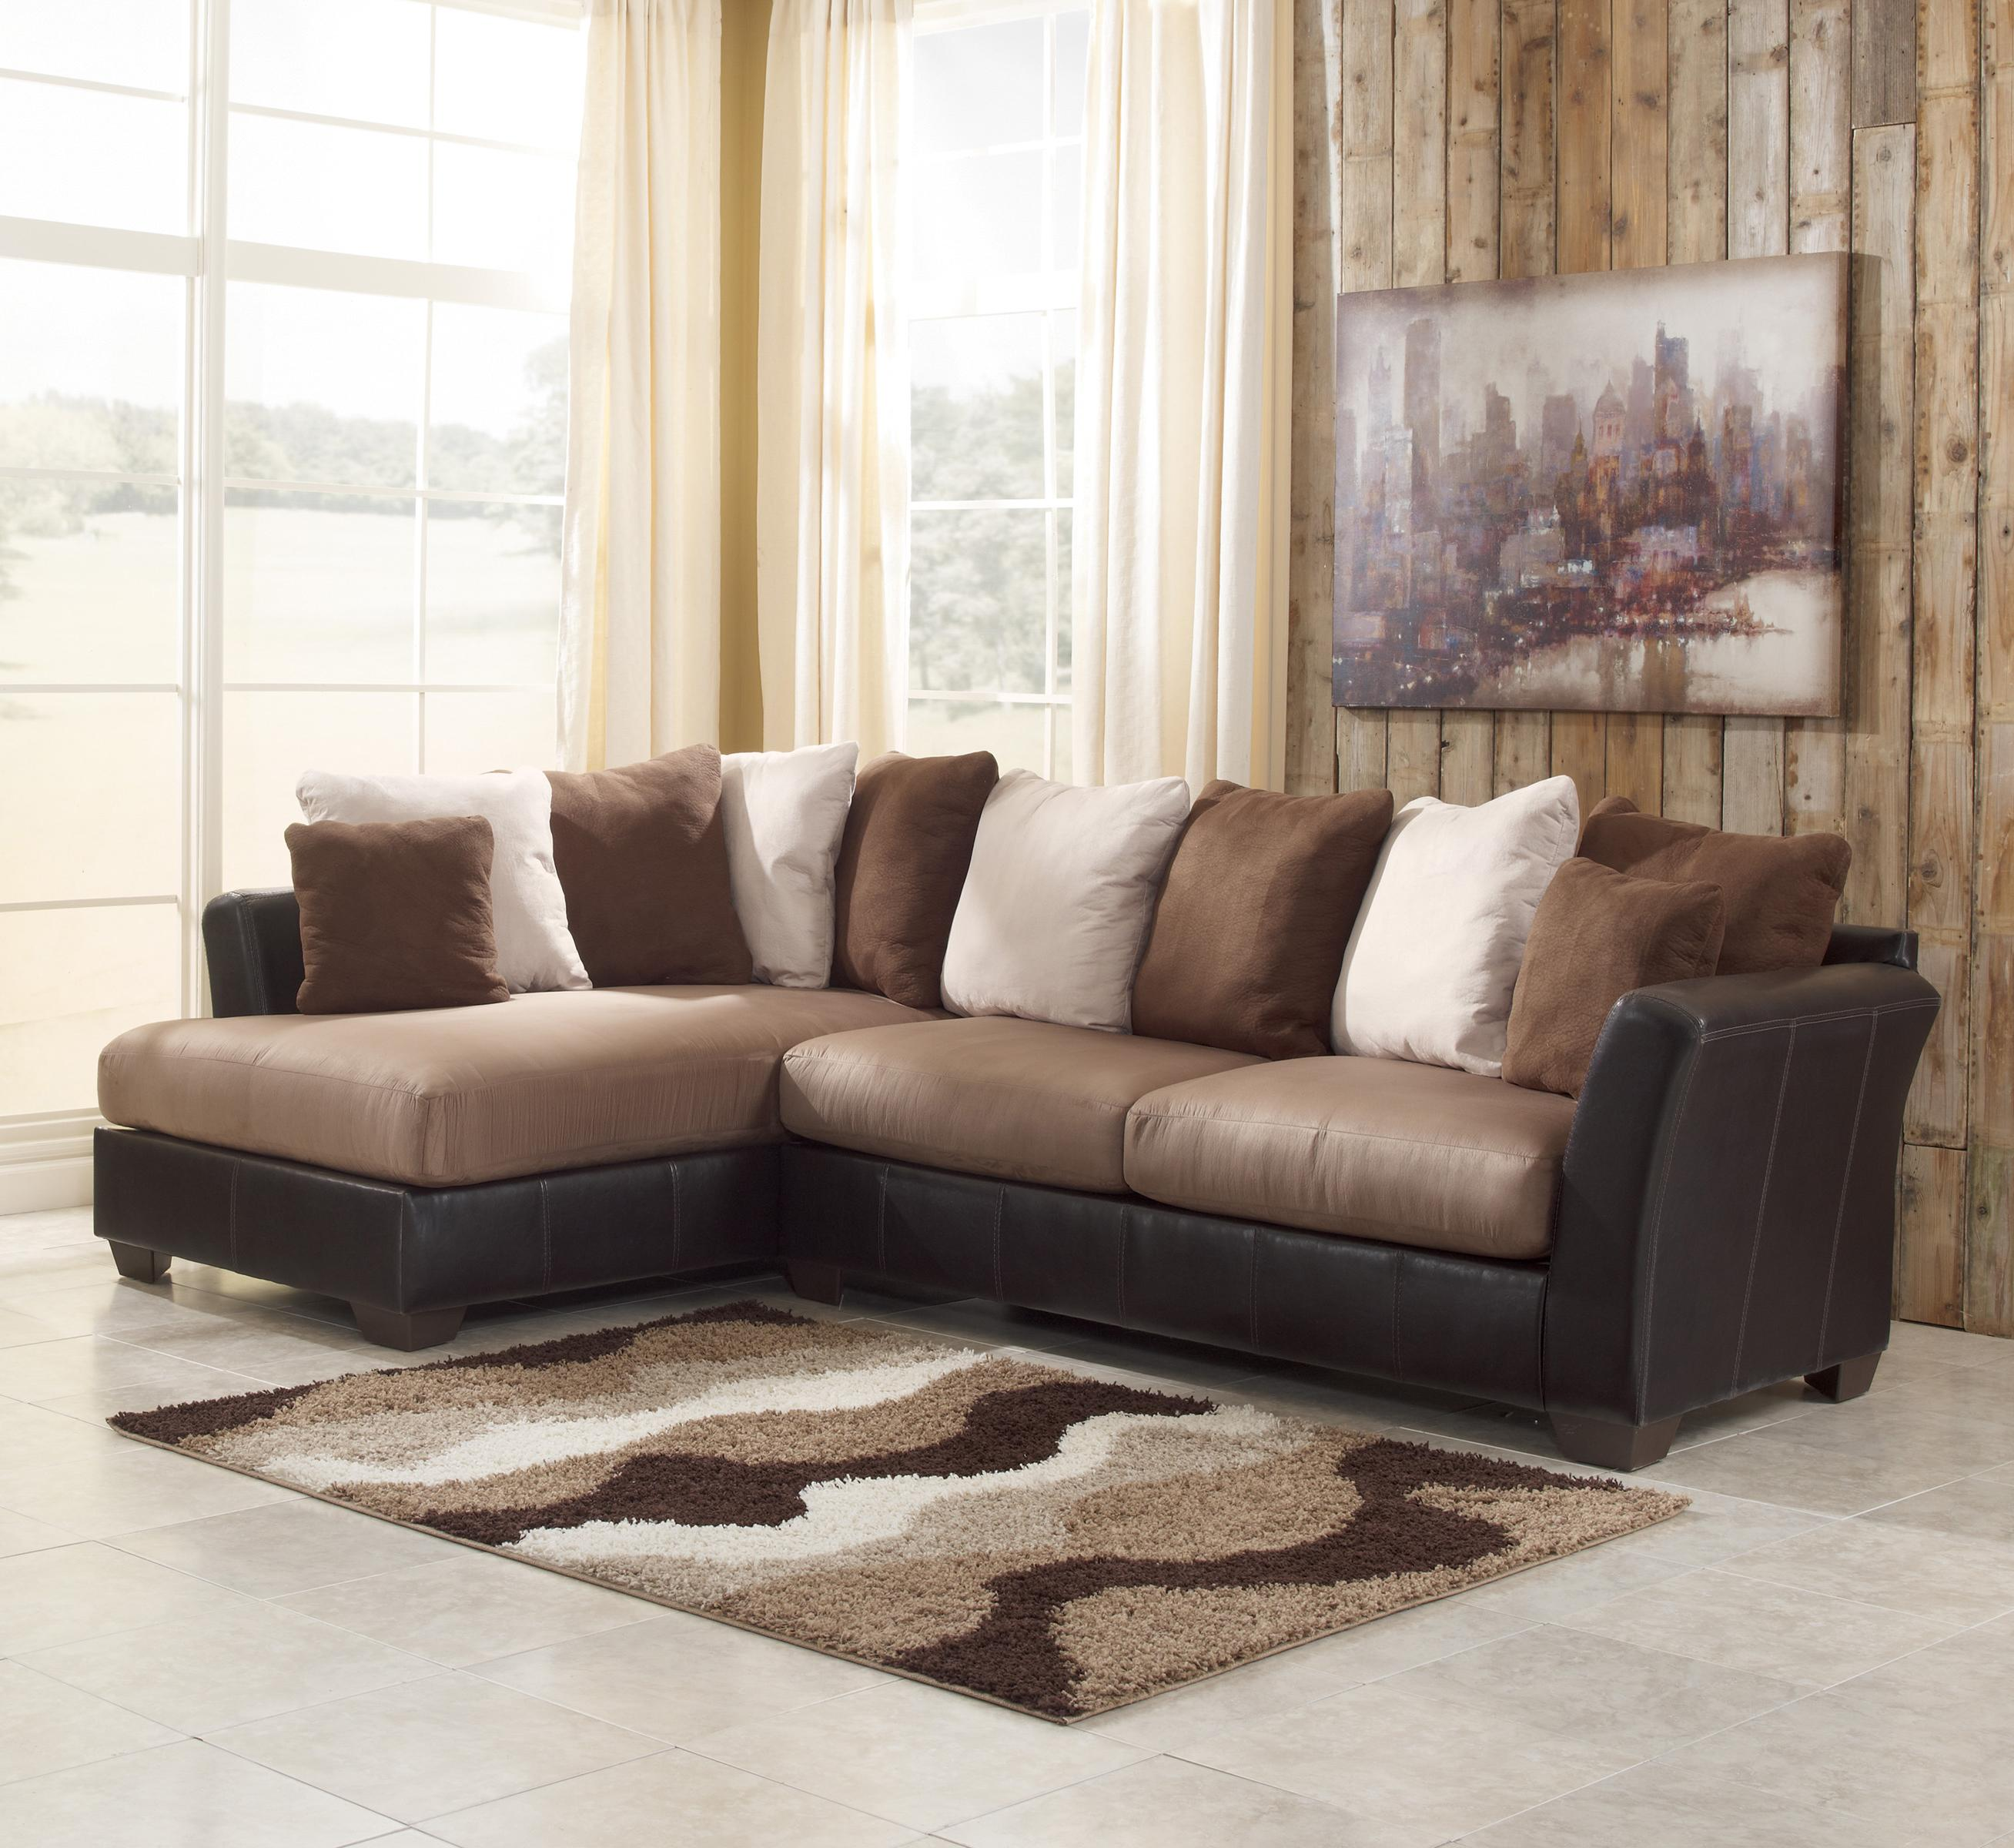 Benchcraft Masoli - Mocha 2-Piece Sectional with Chaise - Item Number: 1420116+67